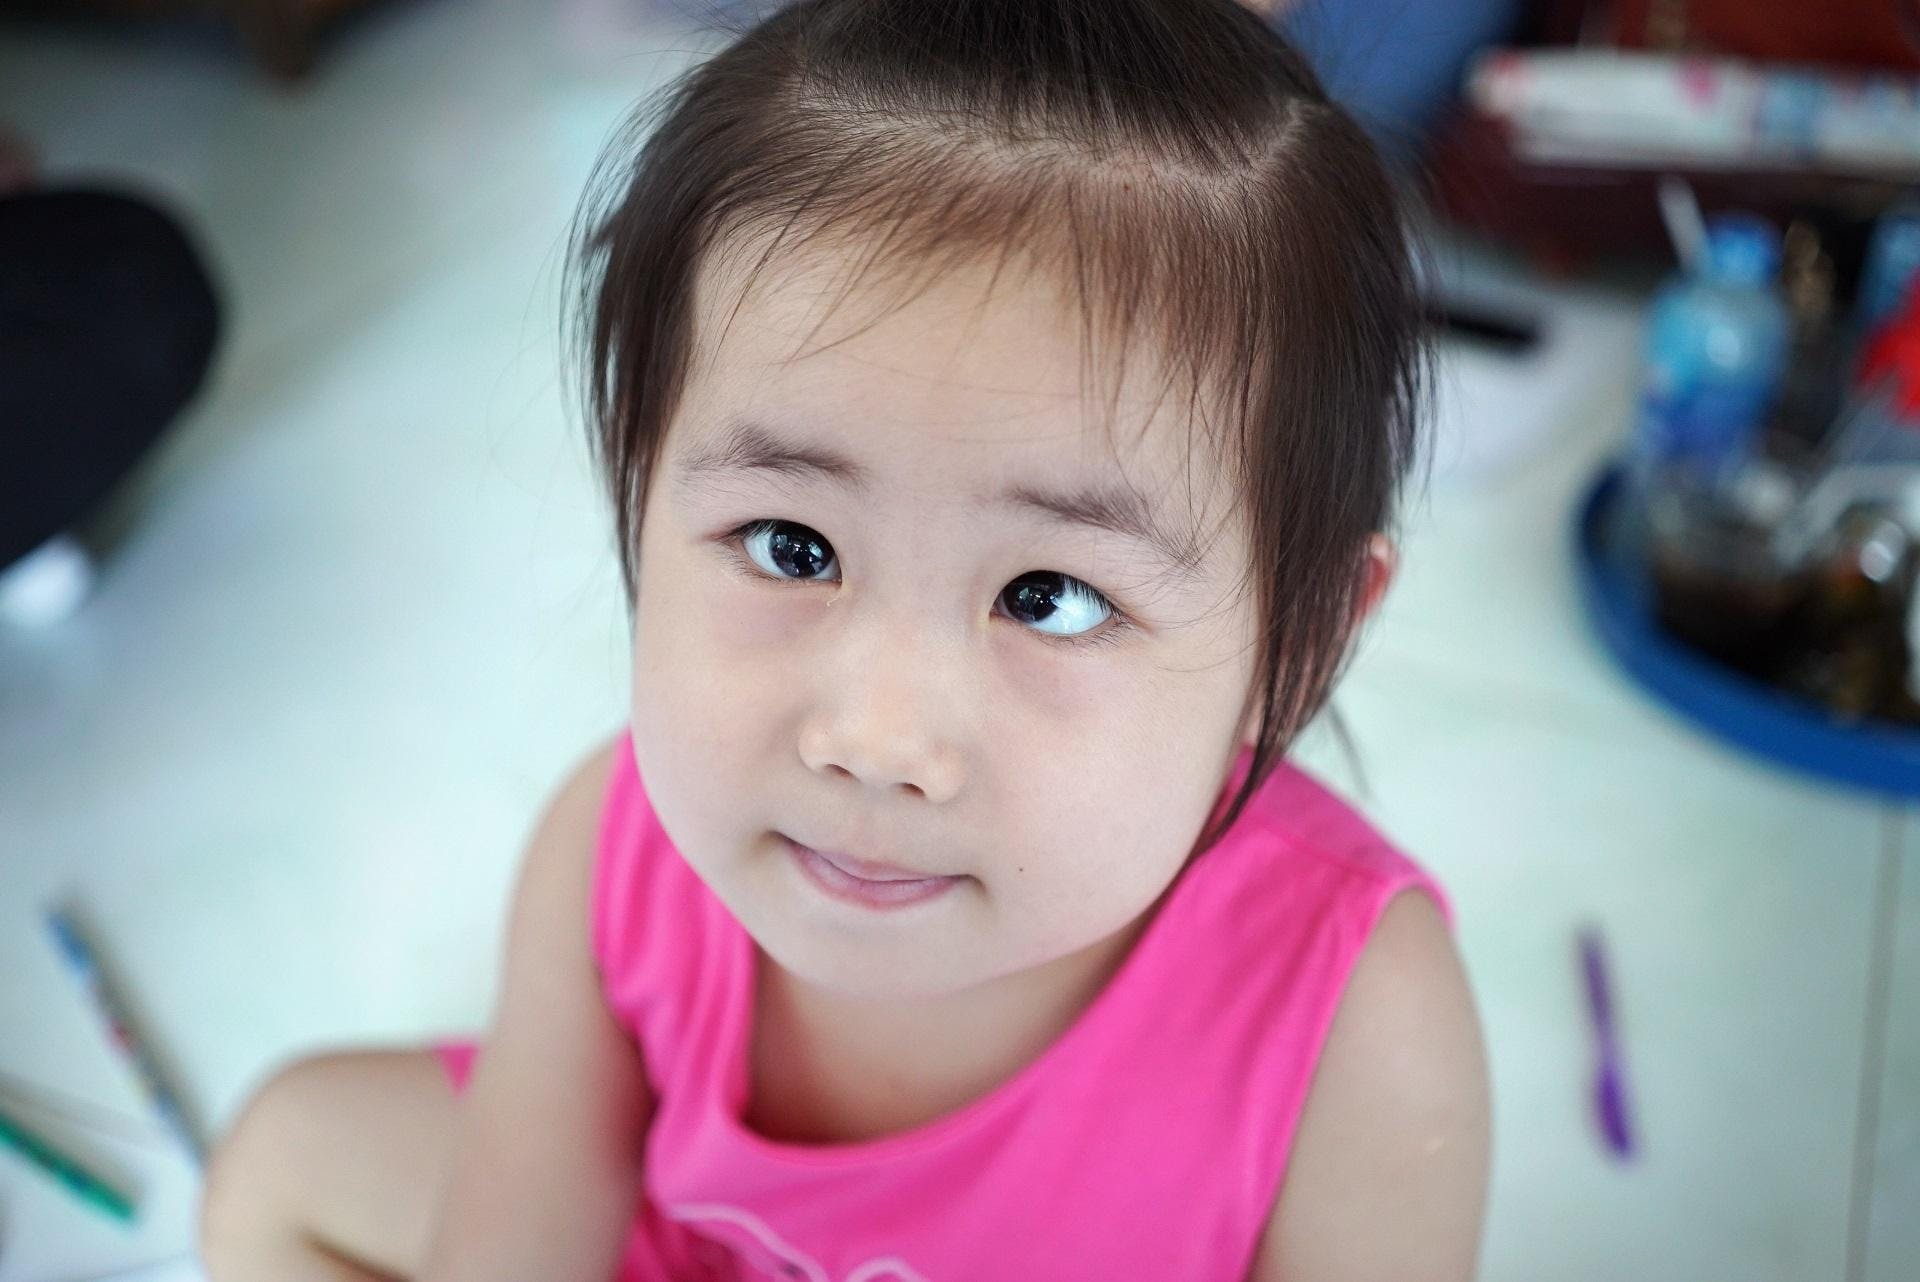 Three-year-old Truc had strabismus, but she had her vision saved thanks to Orbis trained eye surgeons